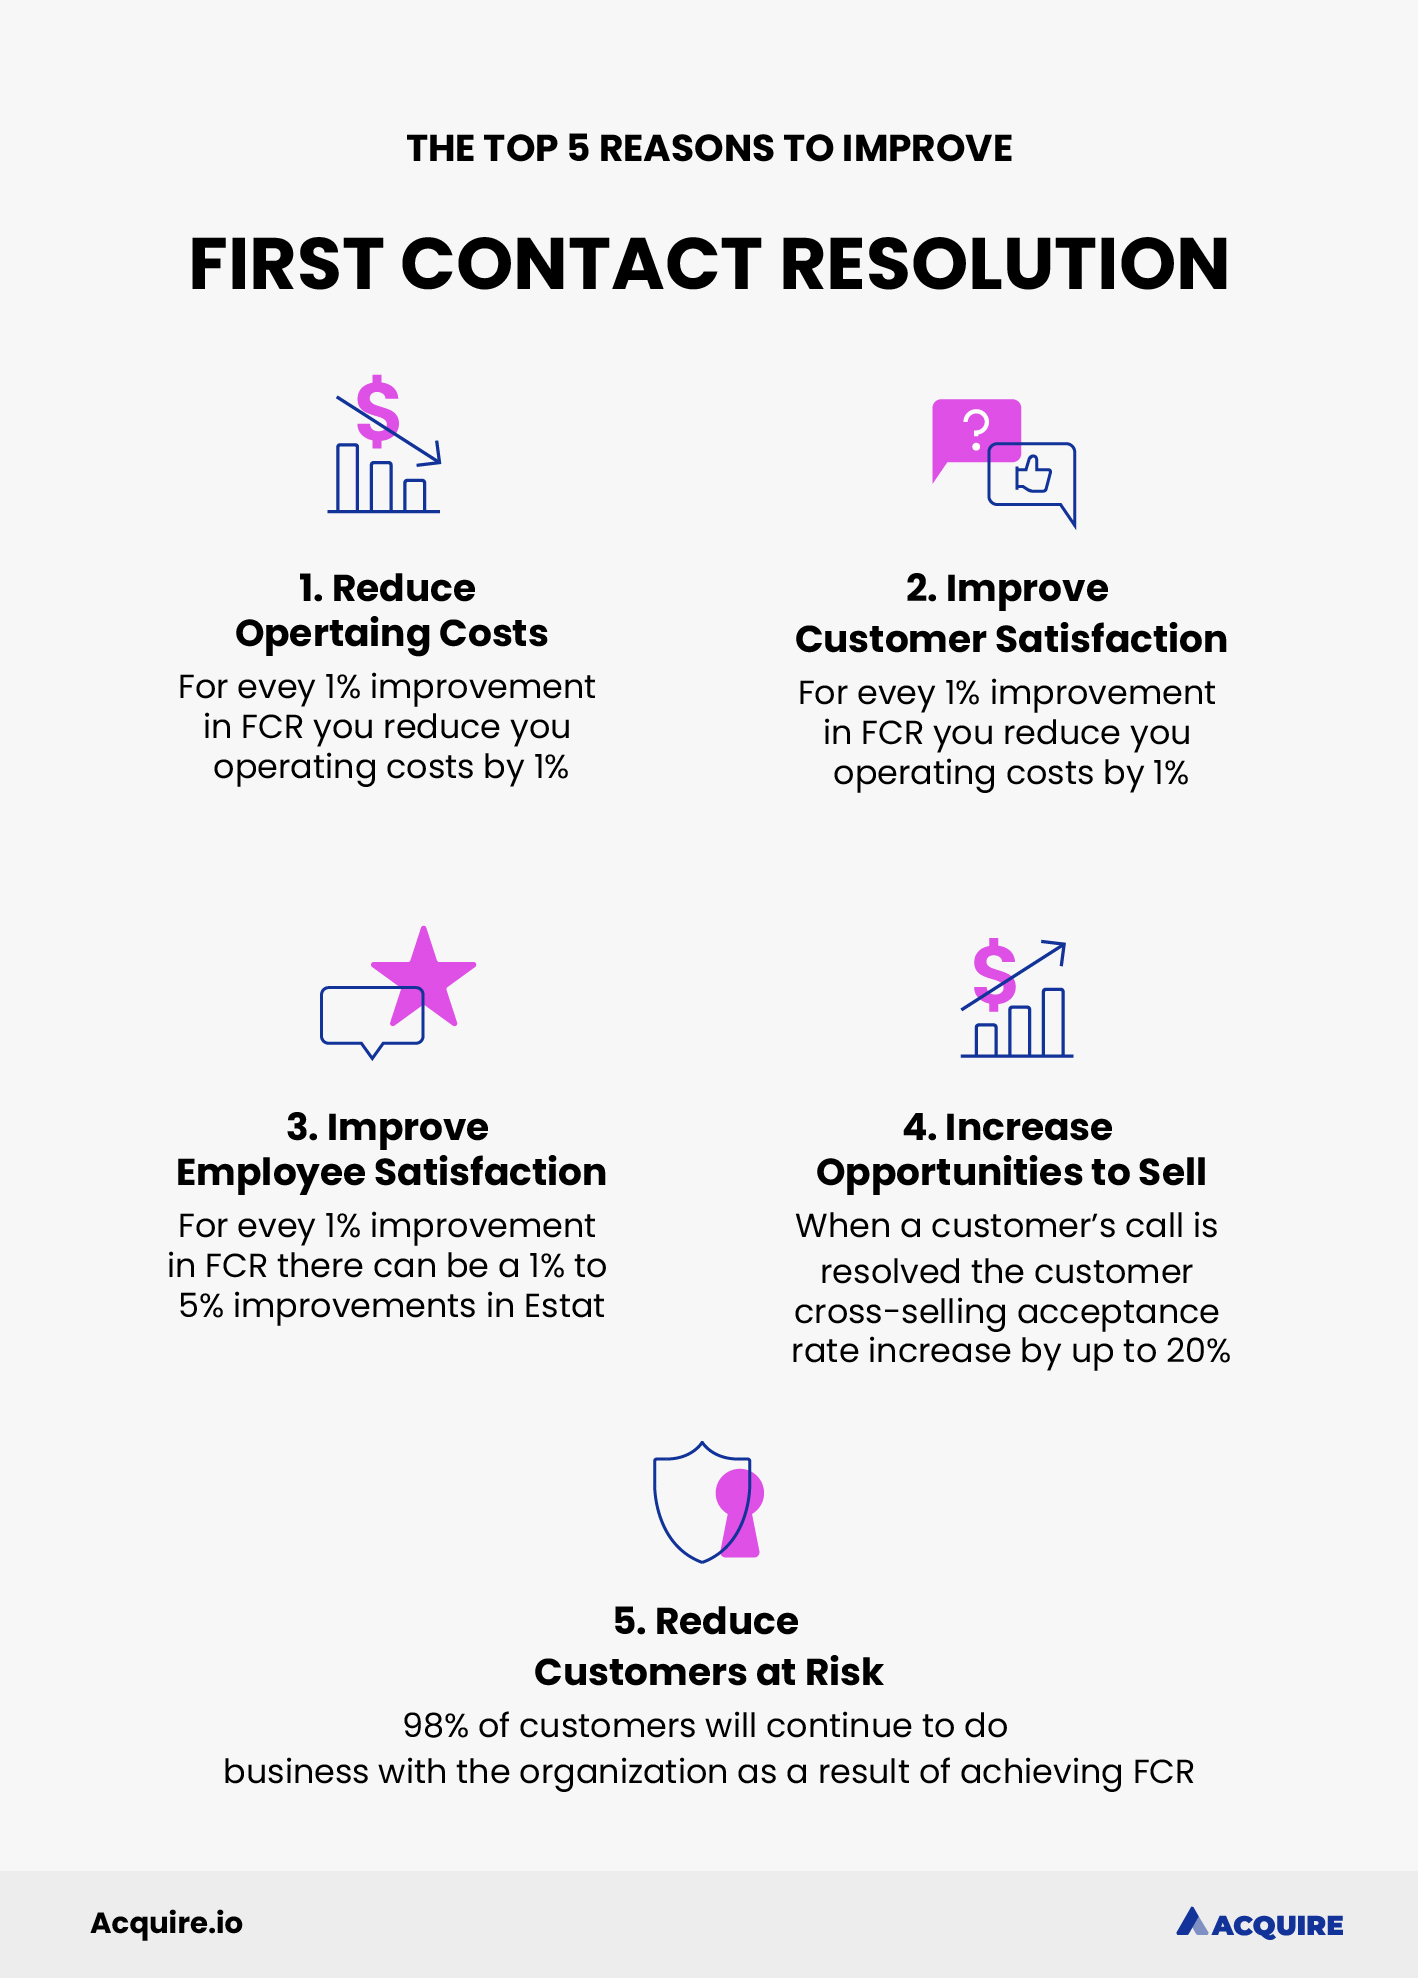 Top 5 reasons to improve first contact resolution infographic